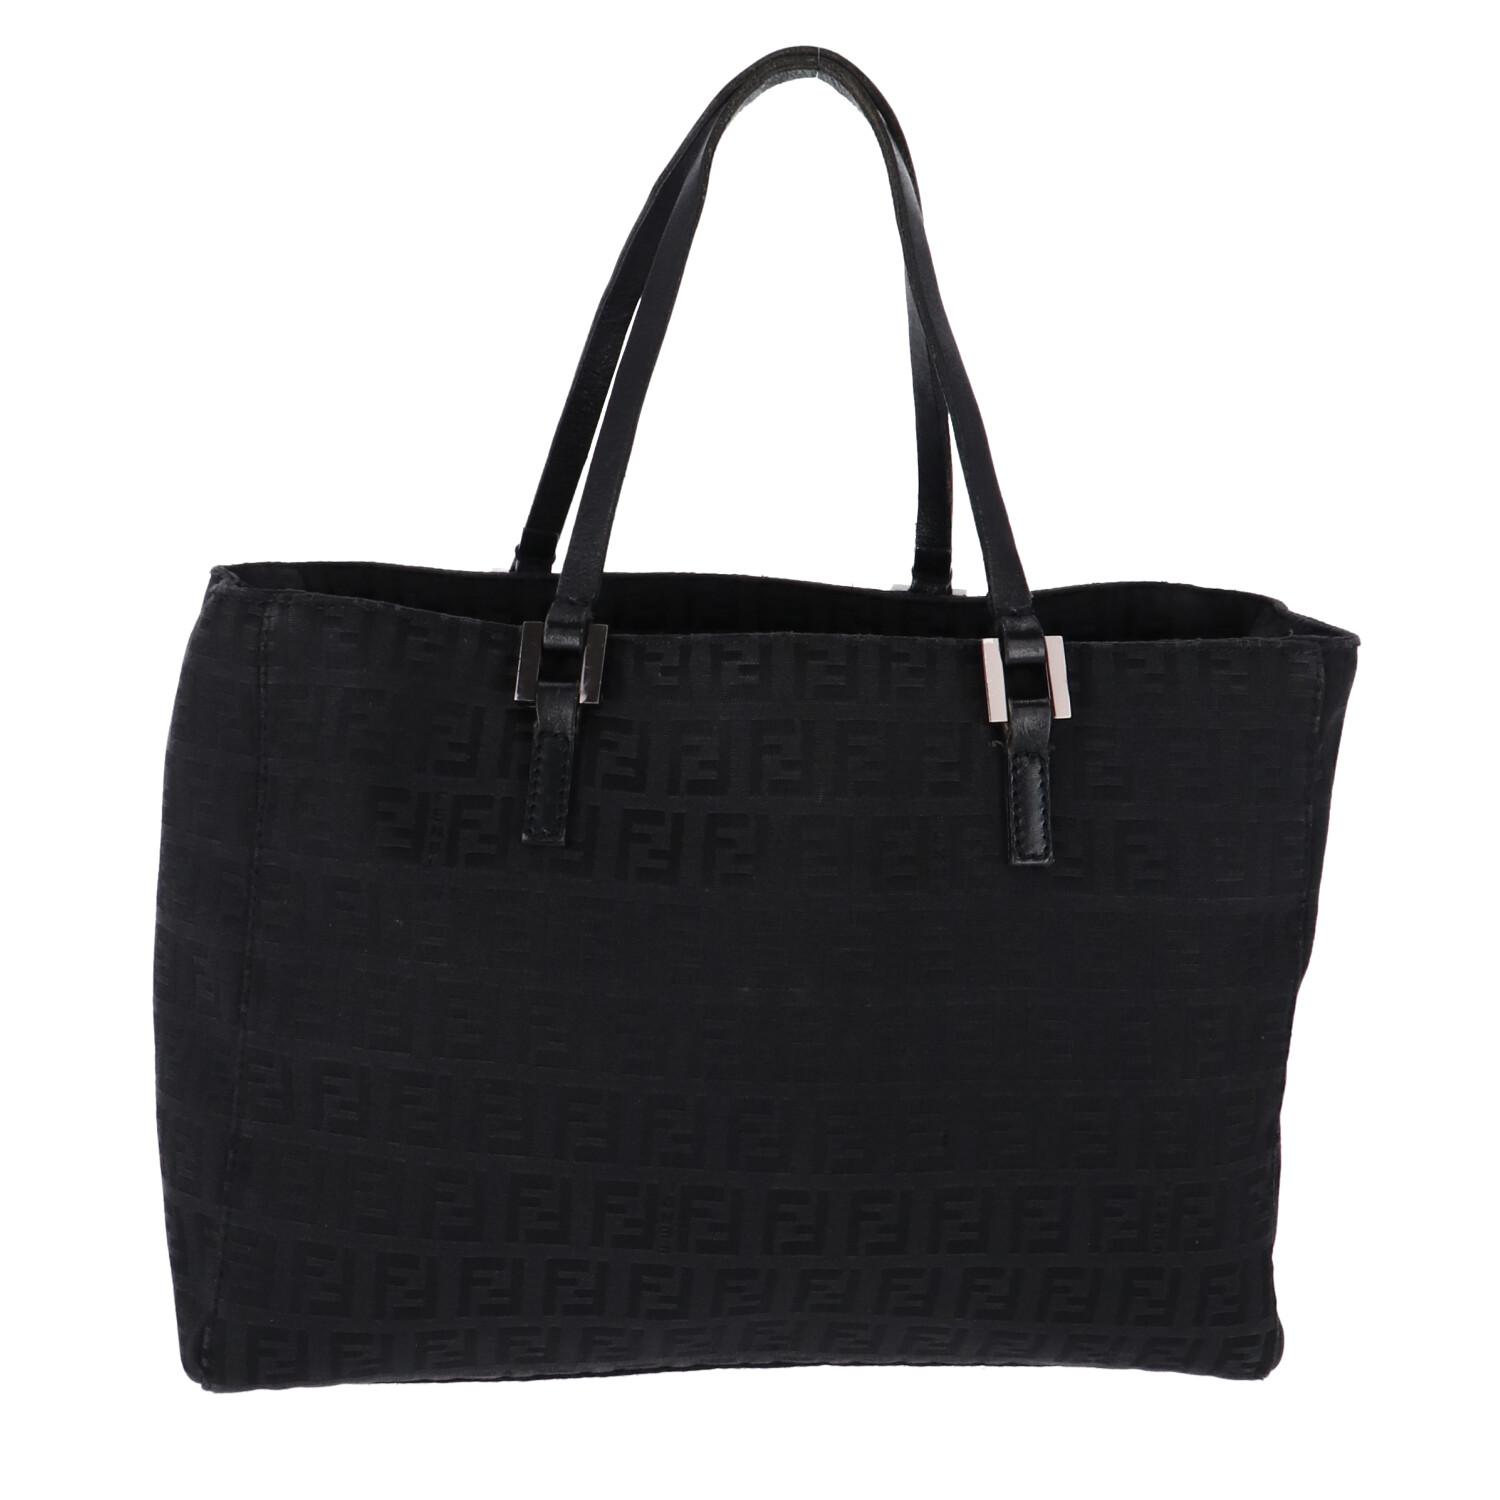 Fendi Black Zucca Canvas Handbag